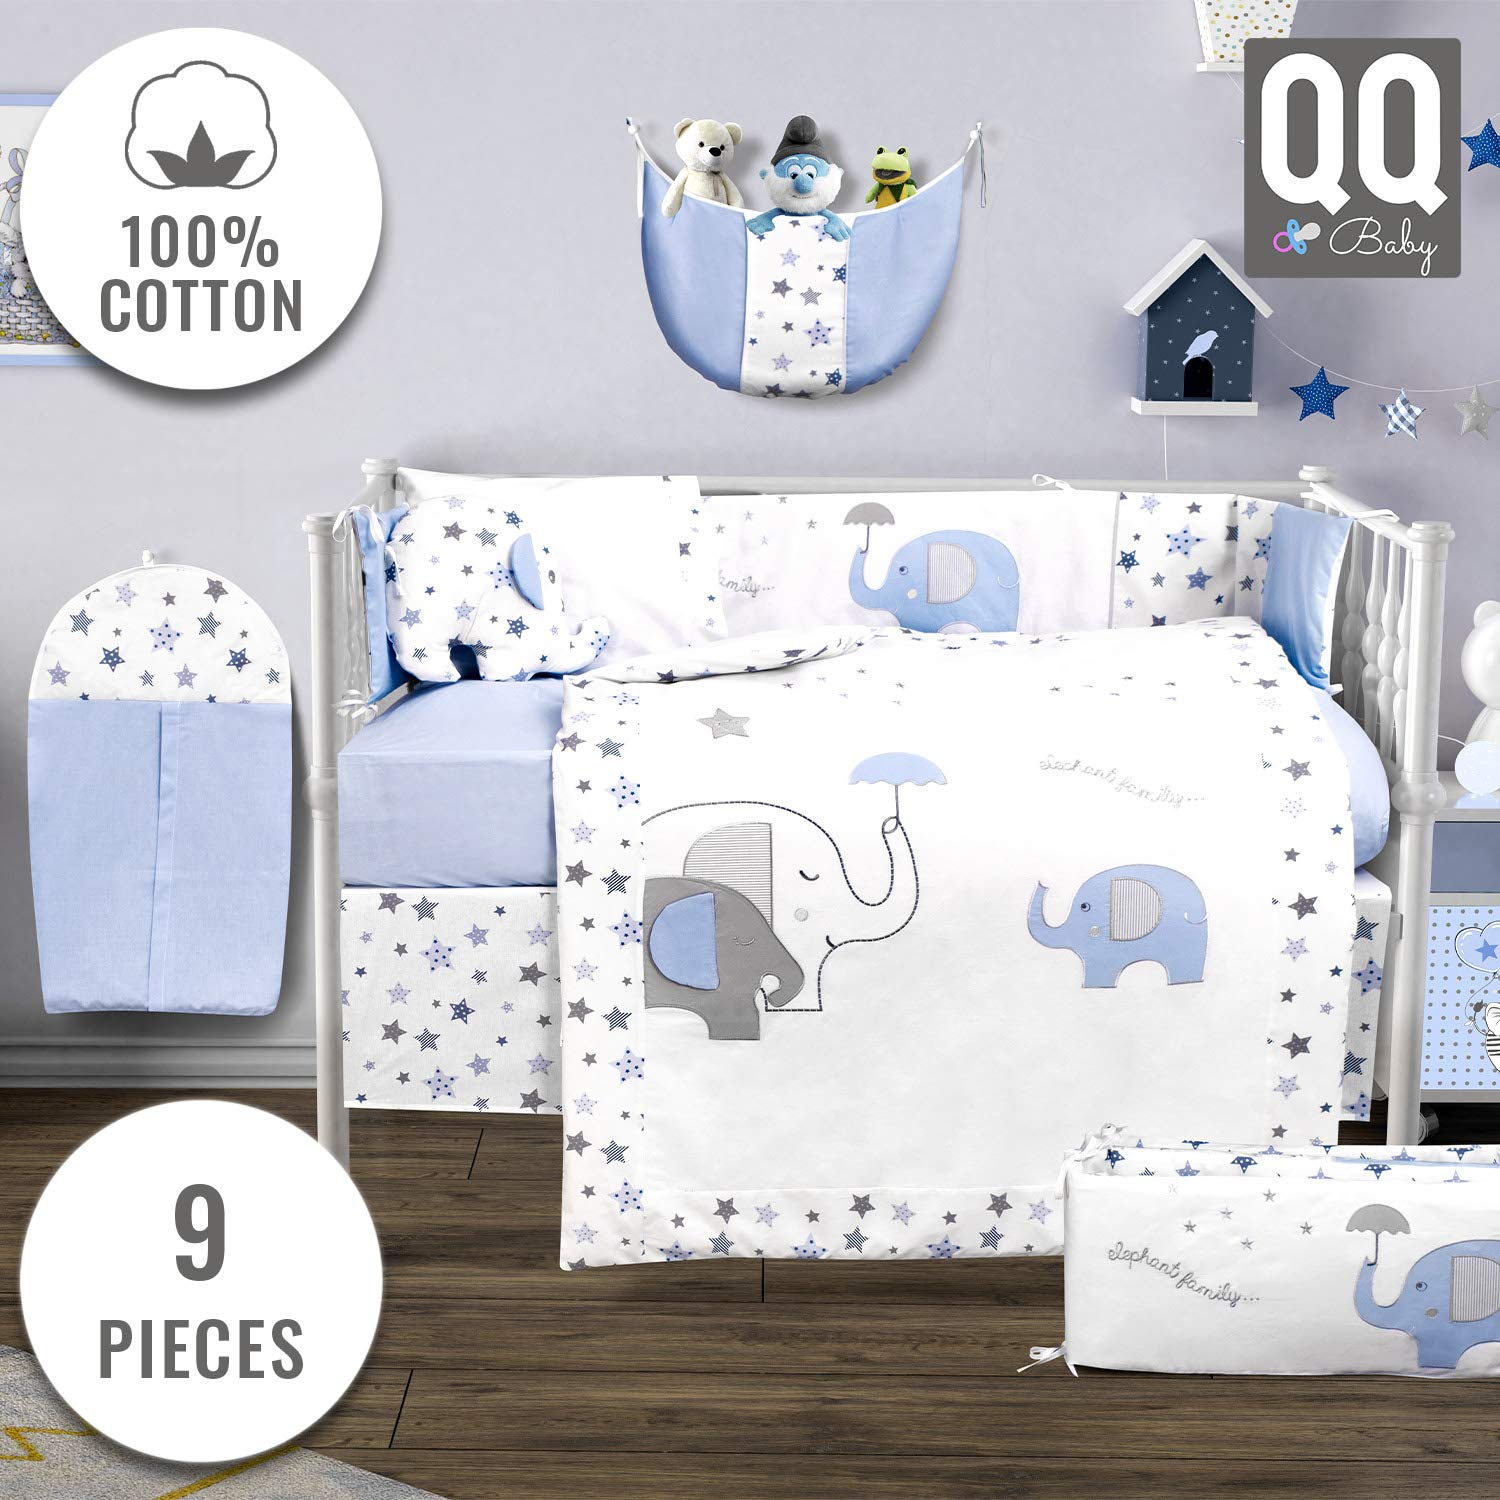 Baby Crib Bedding Set - 100% Turkish Cotton - 9 Piece Nursery Crib Bedding Sets for Boys - Elephant Design - 4 Color Variations by QQ Baby (Blue)